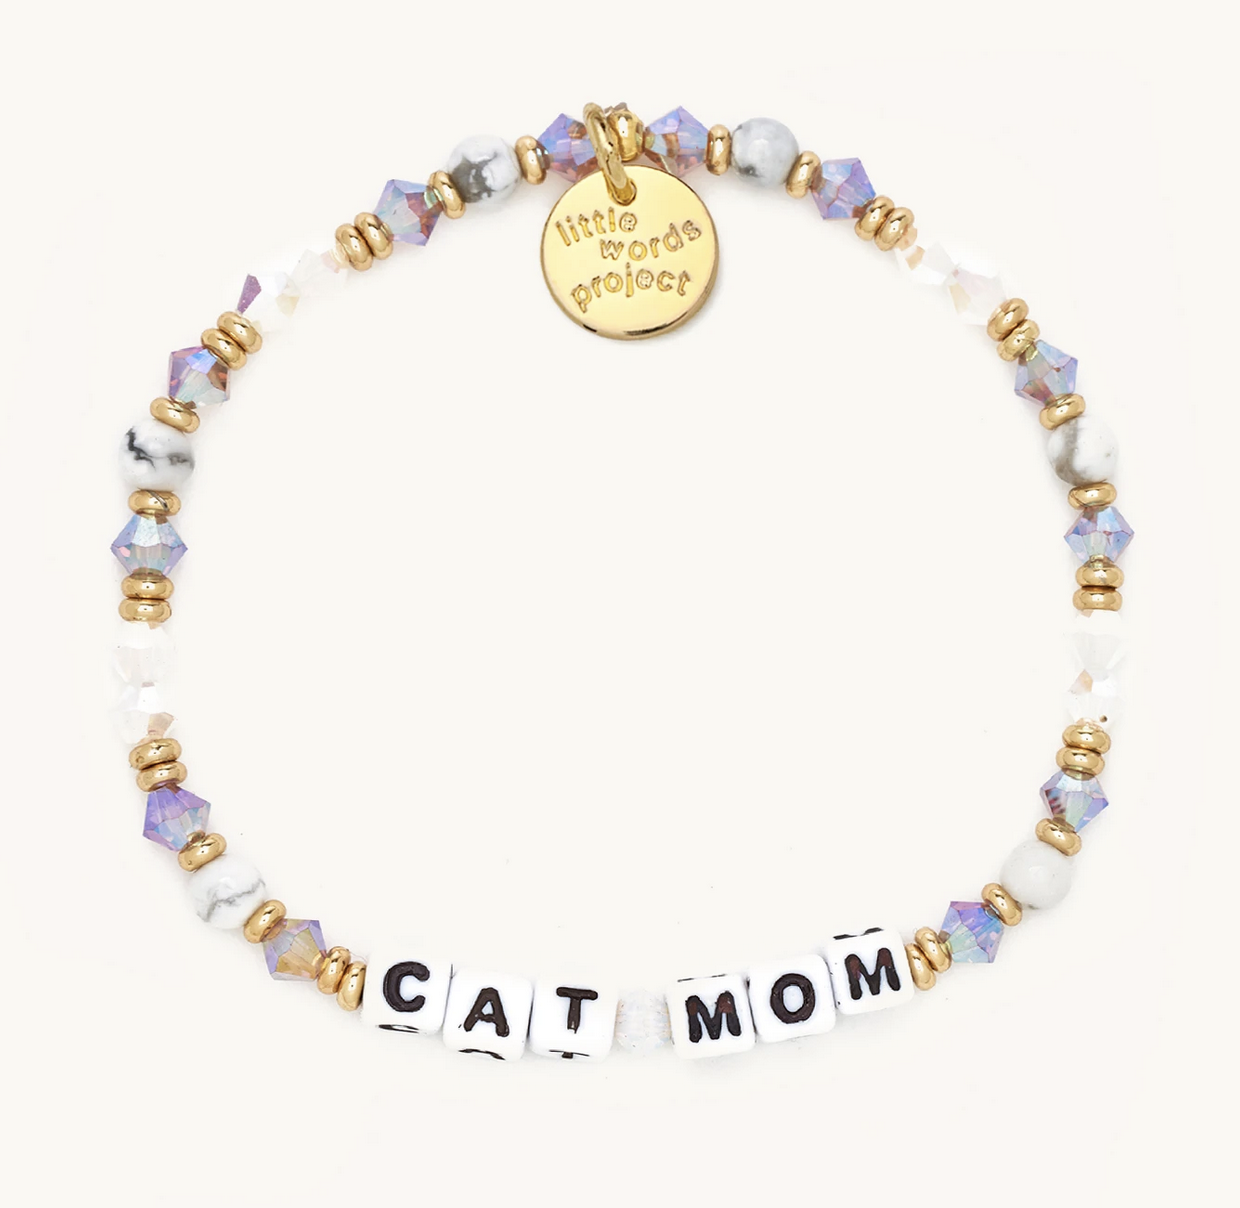 Little Words Project Cat Mom-Pastry-White